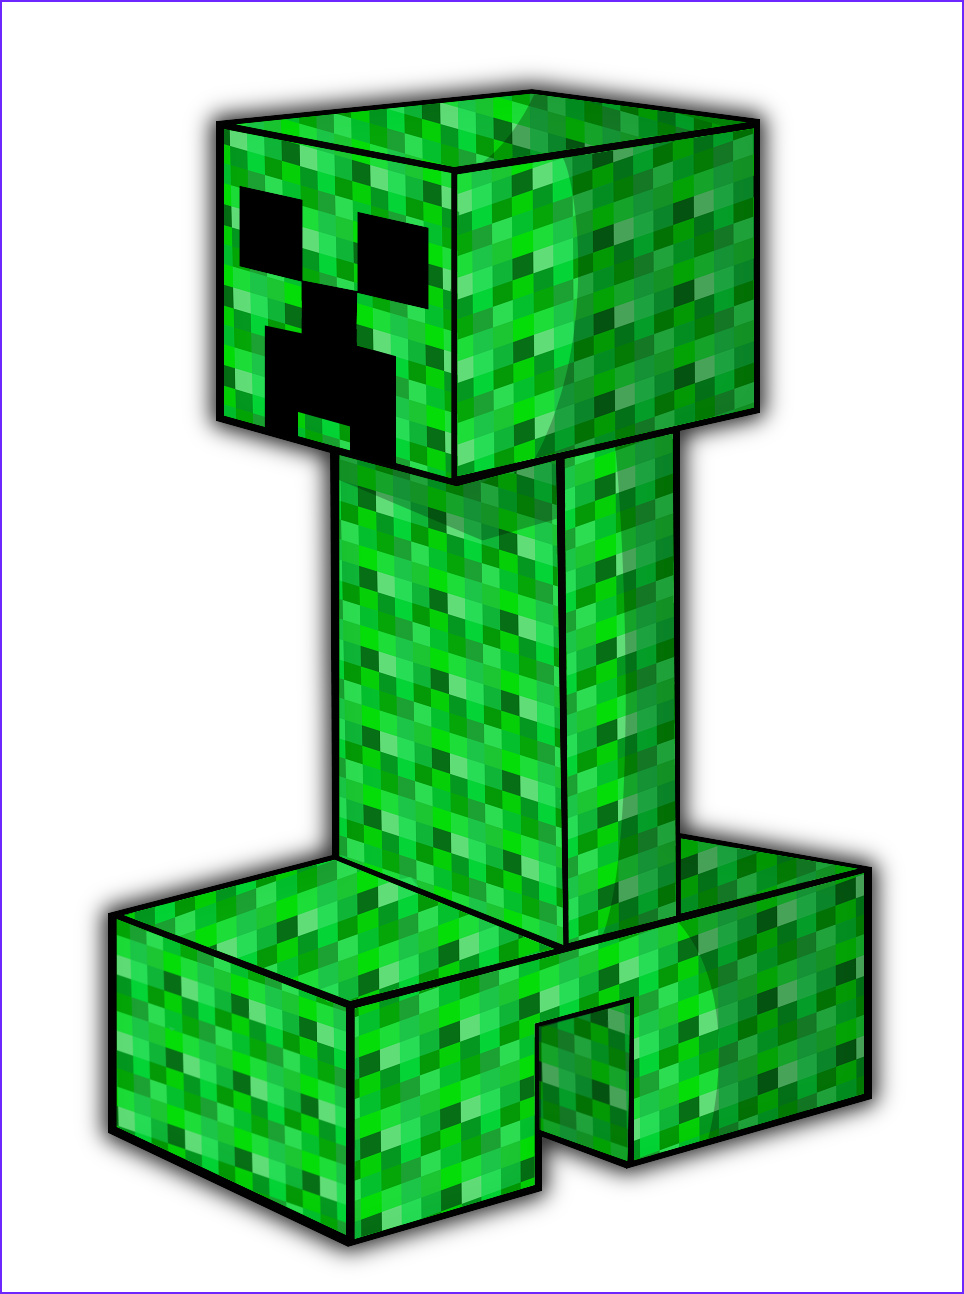 Minecraft Coloring Page Creeper Luxury Photography Webfreak Design Zim and Minecraft Creeper